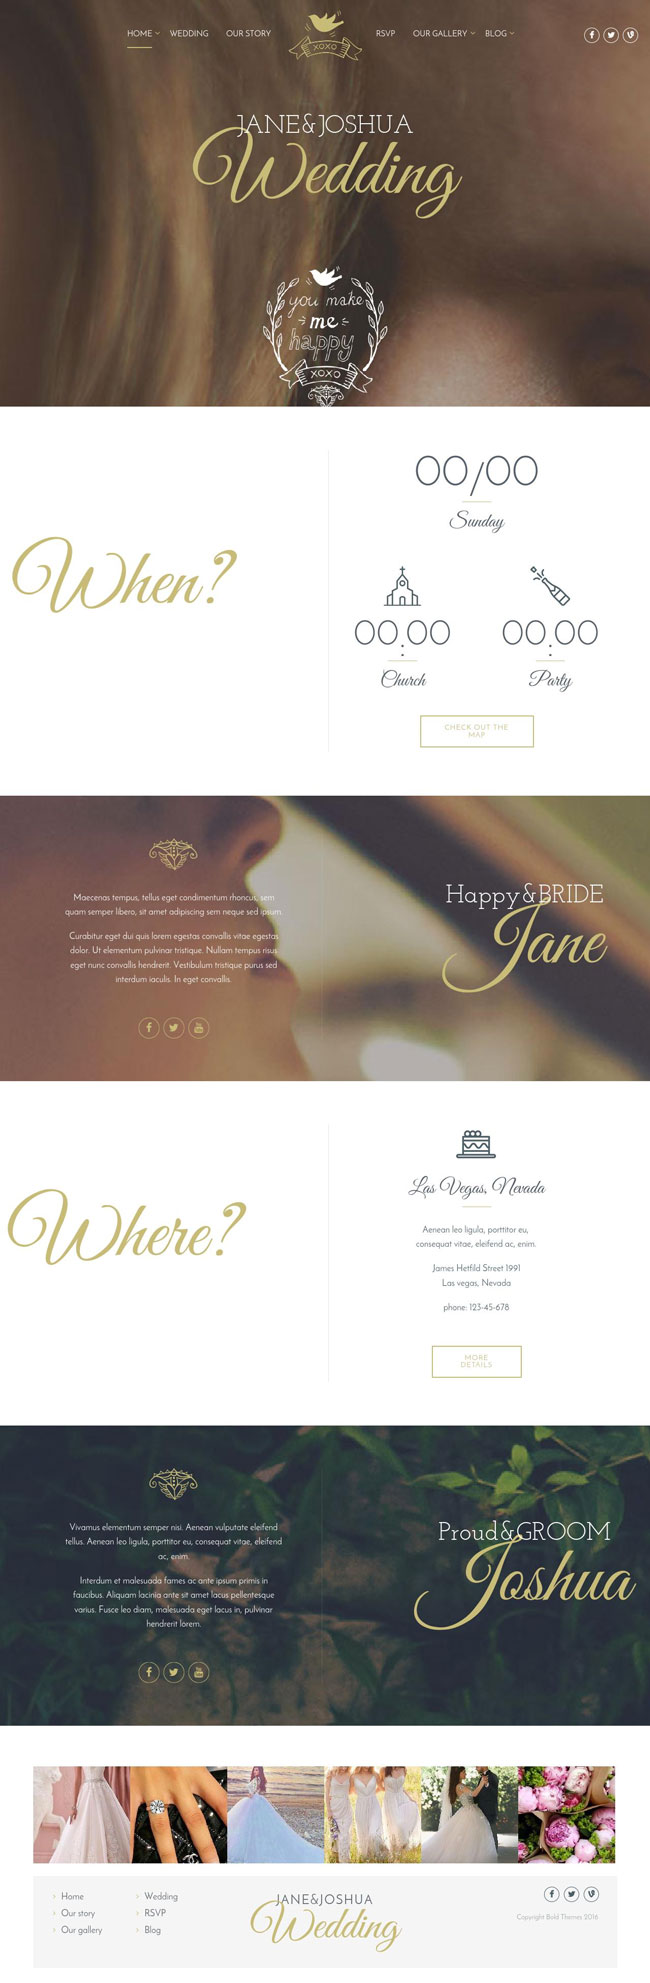 Celebration-Wedding-Class-Reunion--Wordpress-Theme